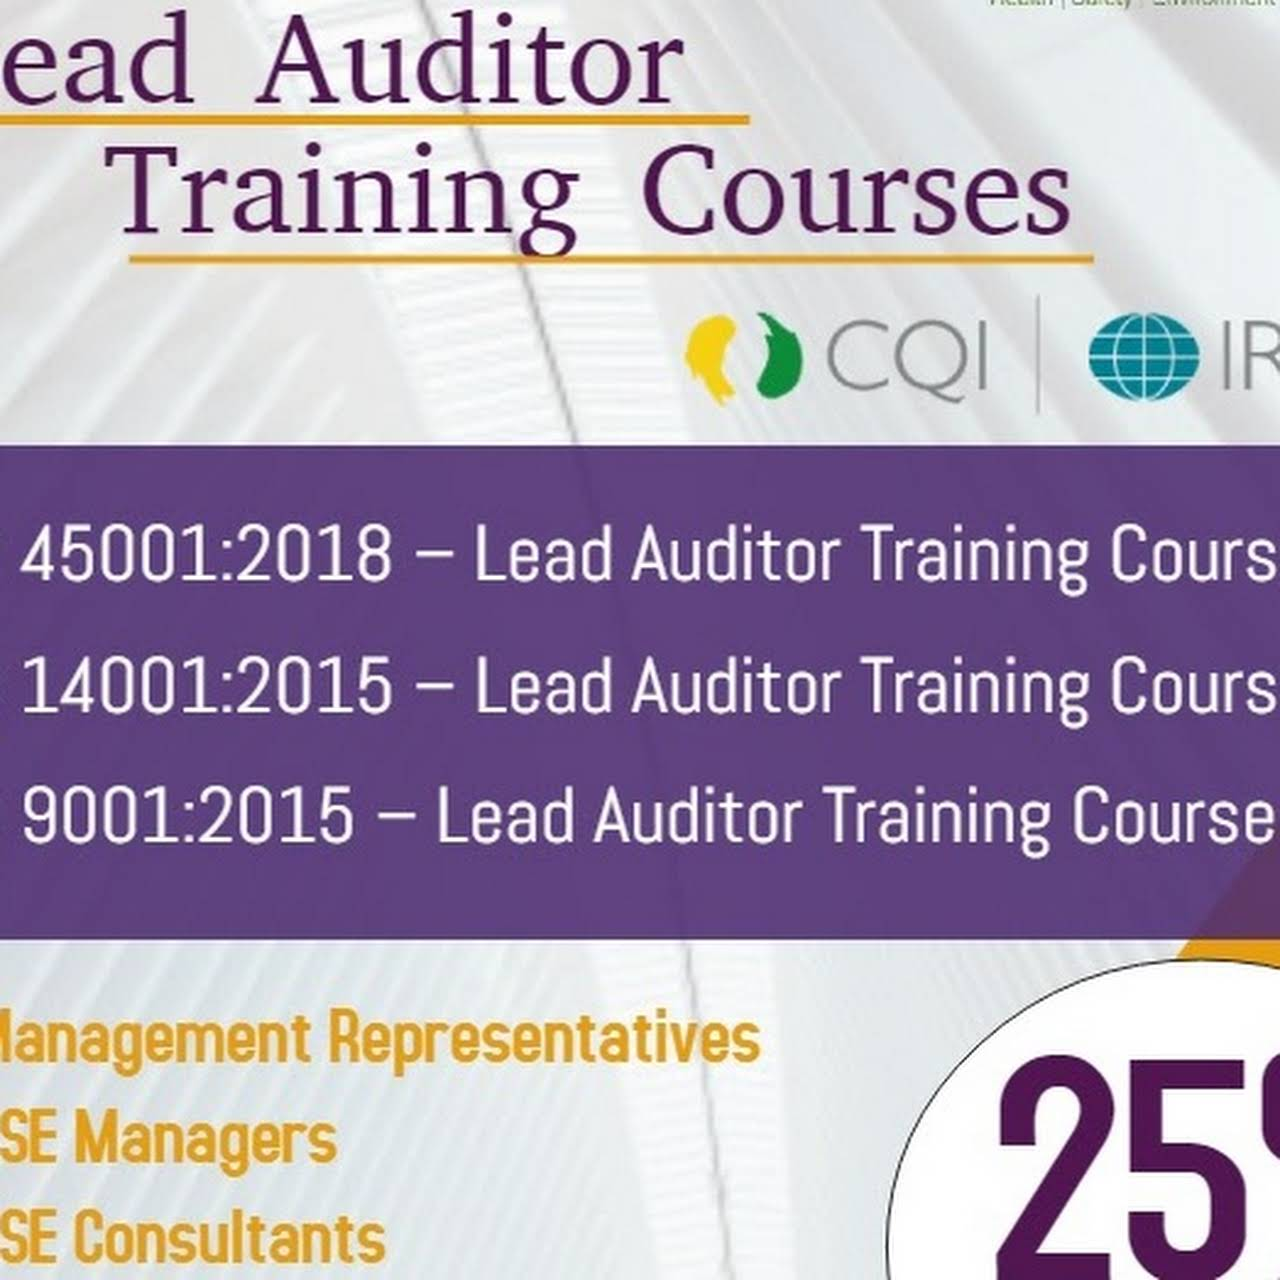 ISO 45001 LEAD AUDITOR TRAINING IN INDIA - Aim Vision Safety